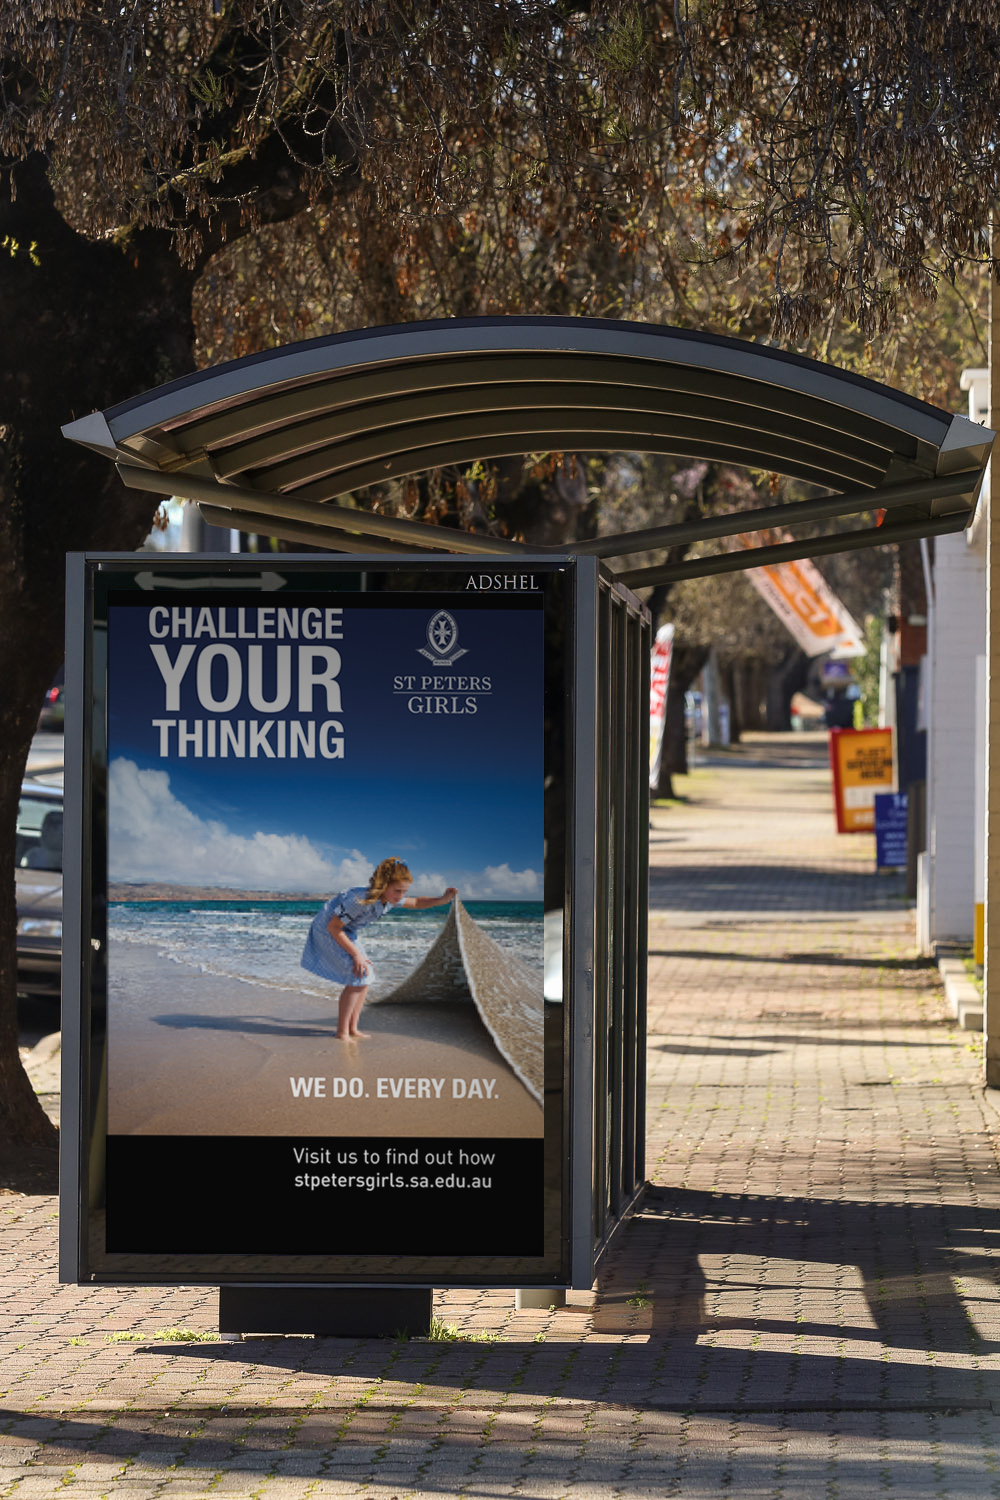 One of the bus shelters out and about in Adelaide.